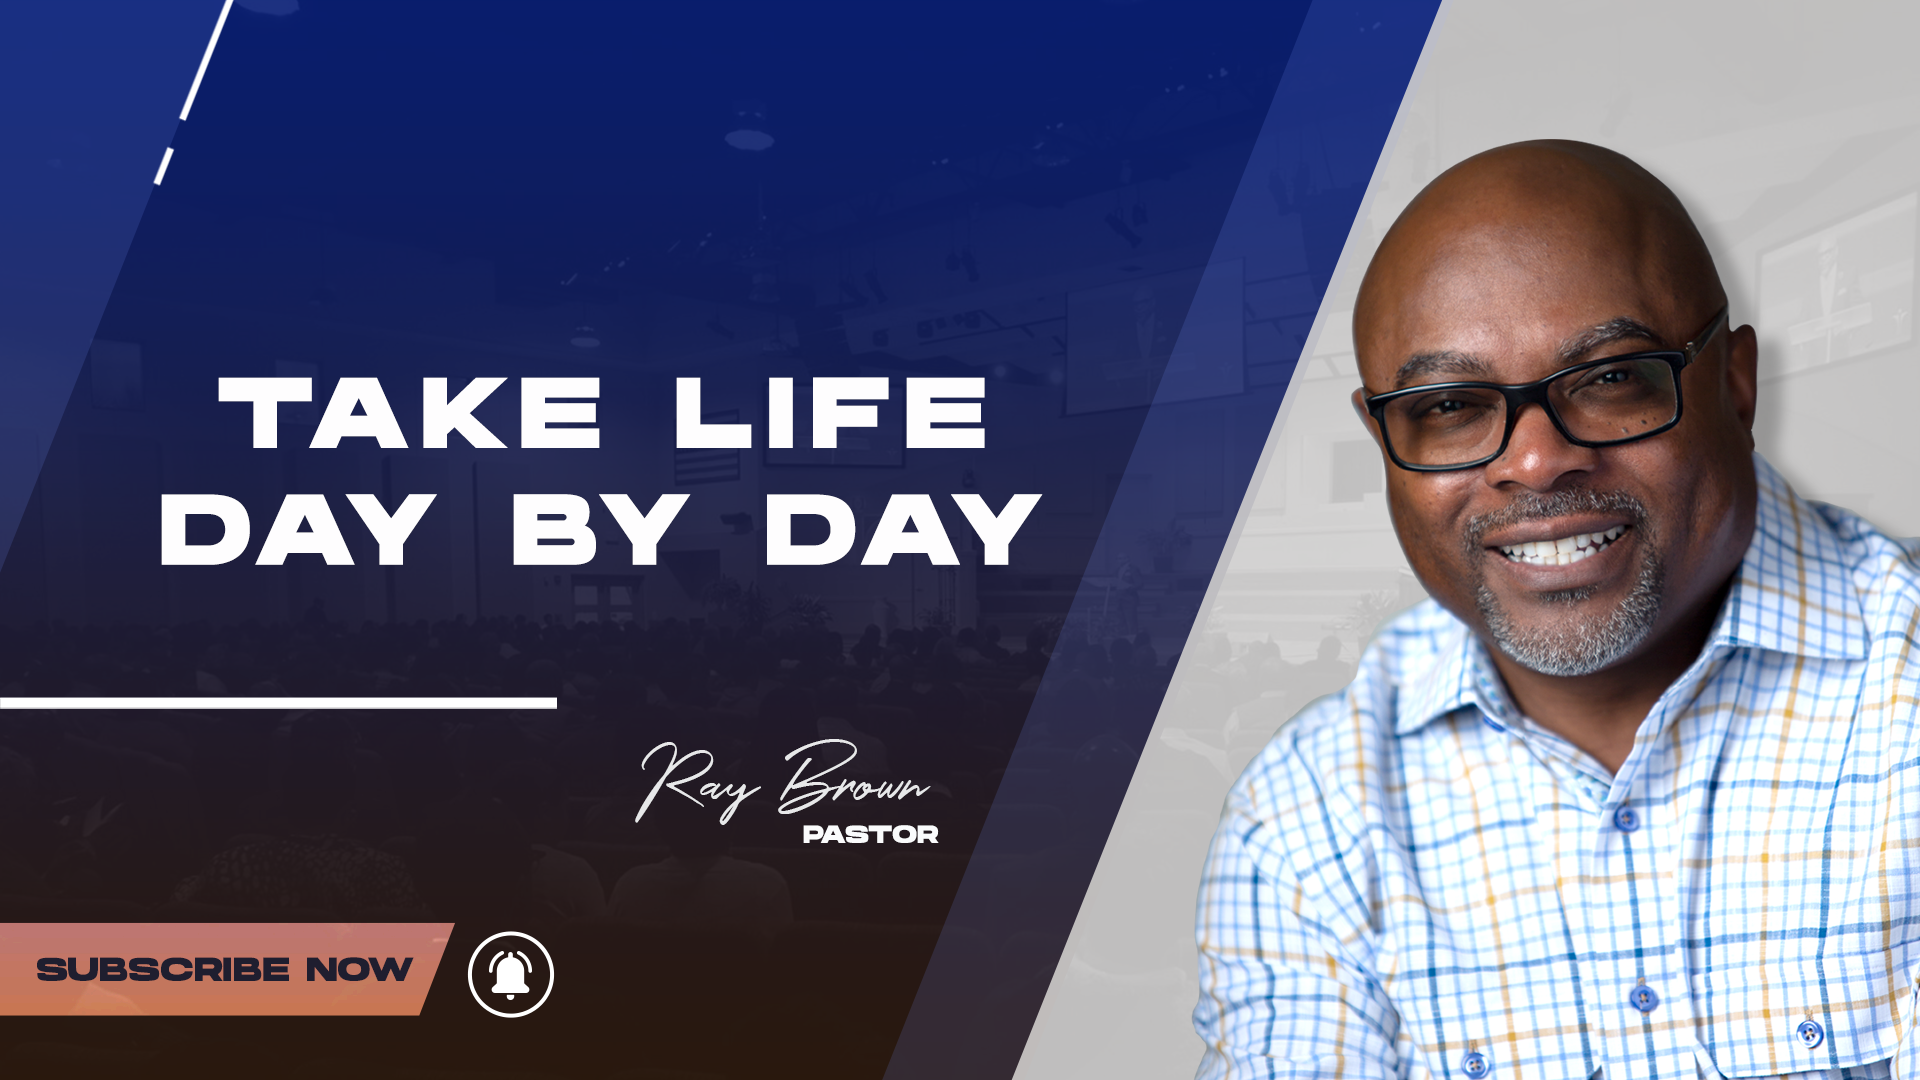 032821 TAKE LIFE DAY BY DAY